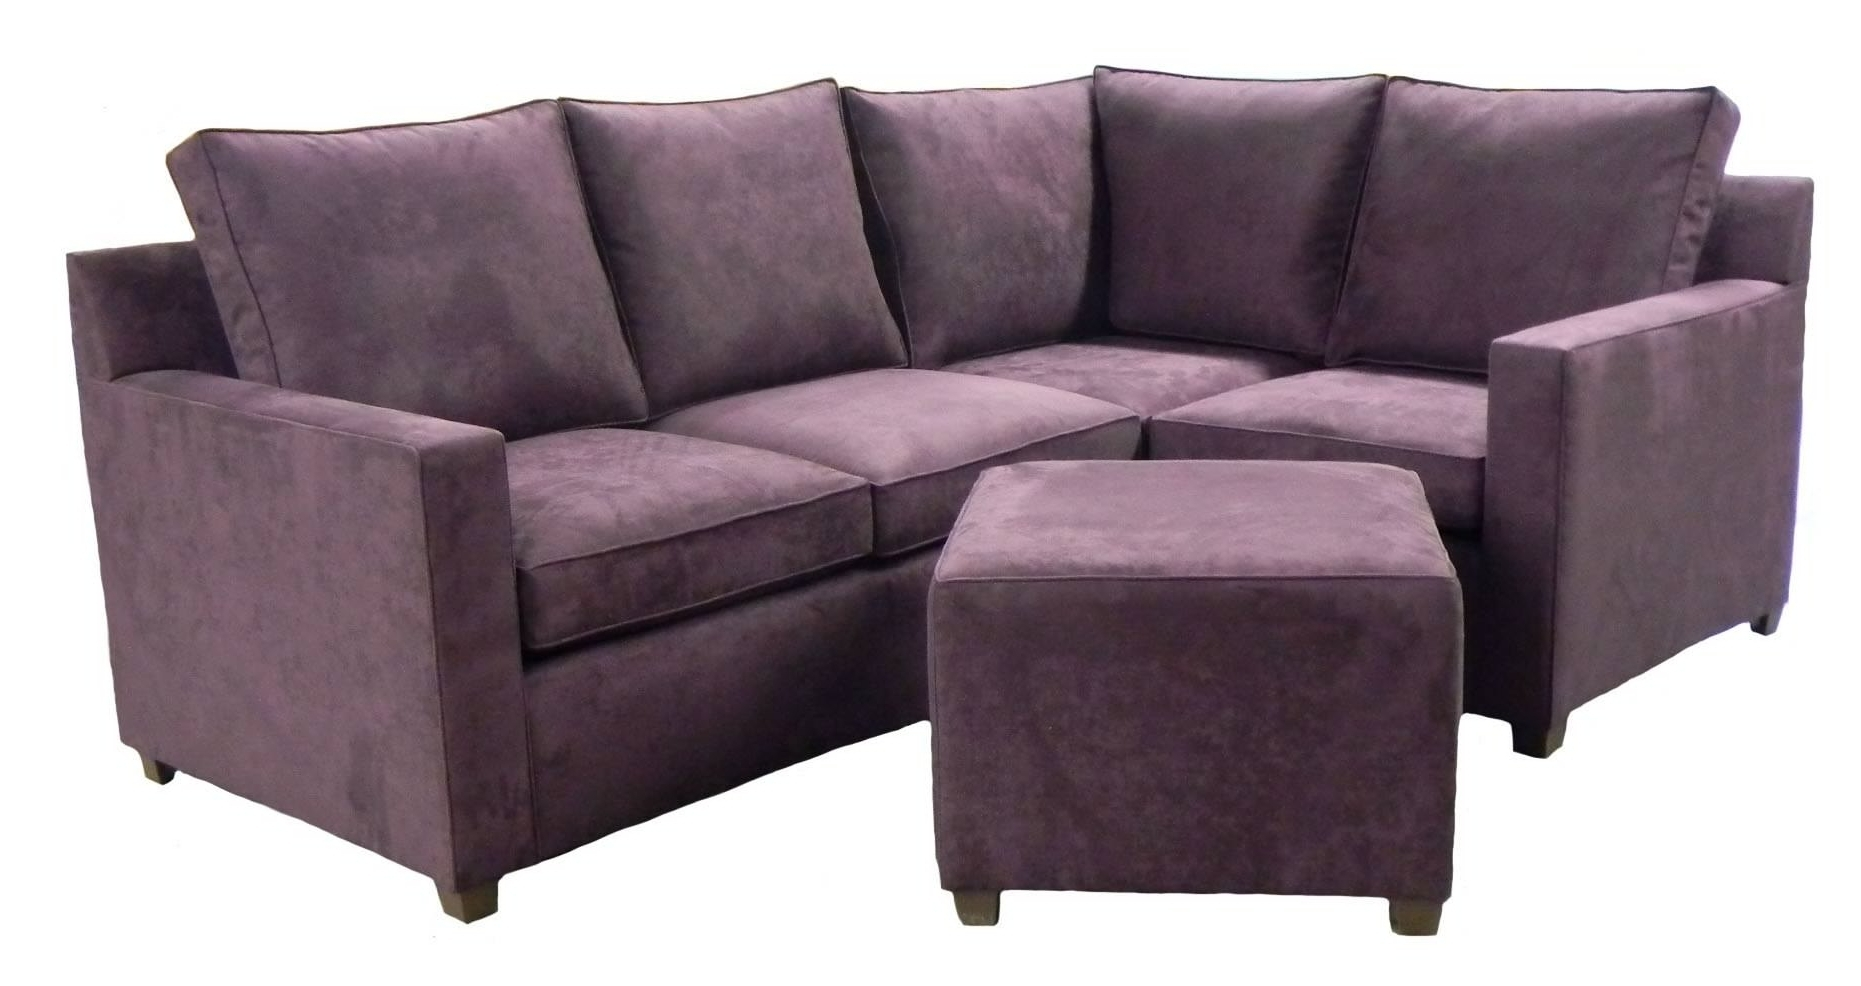 Most Recent Apartment Size Sofas Pertaining To Sectional Sofa Design: Apartment Size Sectional Sofa Bed Chaise (View 11 of 15)